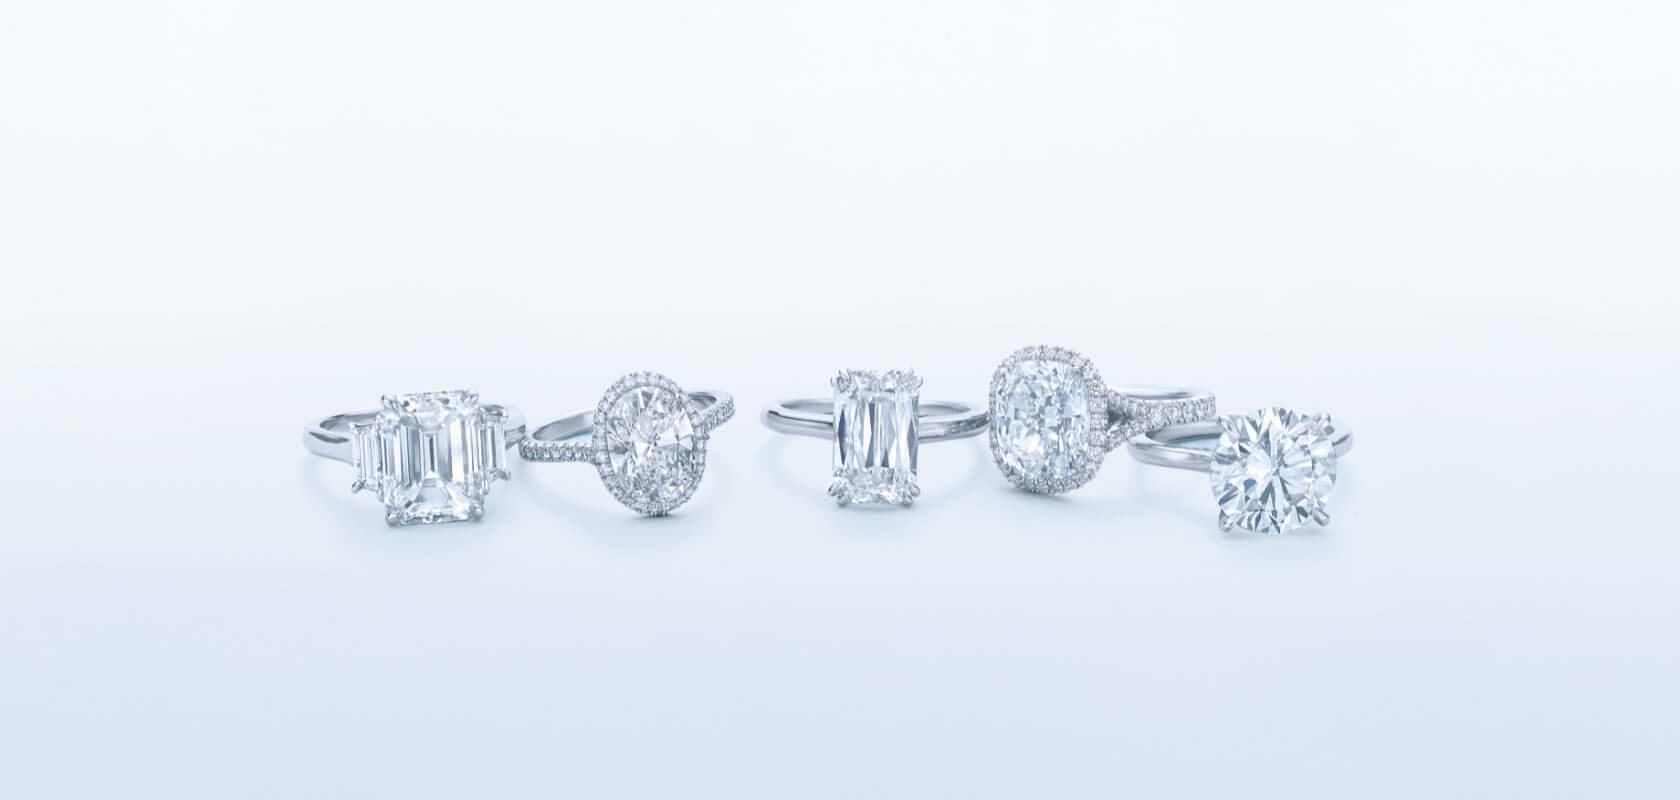 Where to Find Engagement Ring Advice